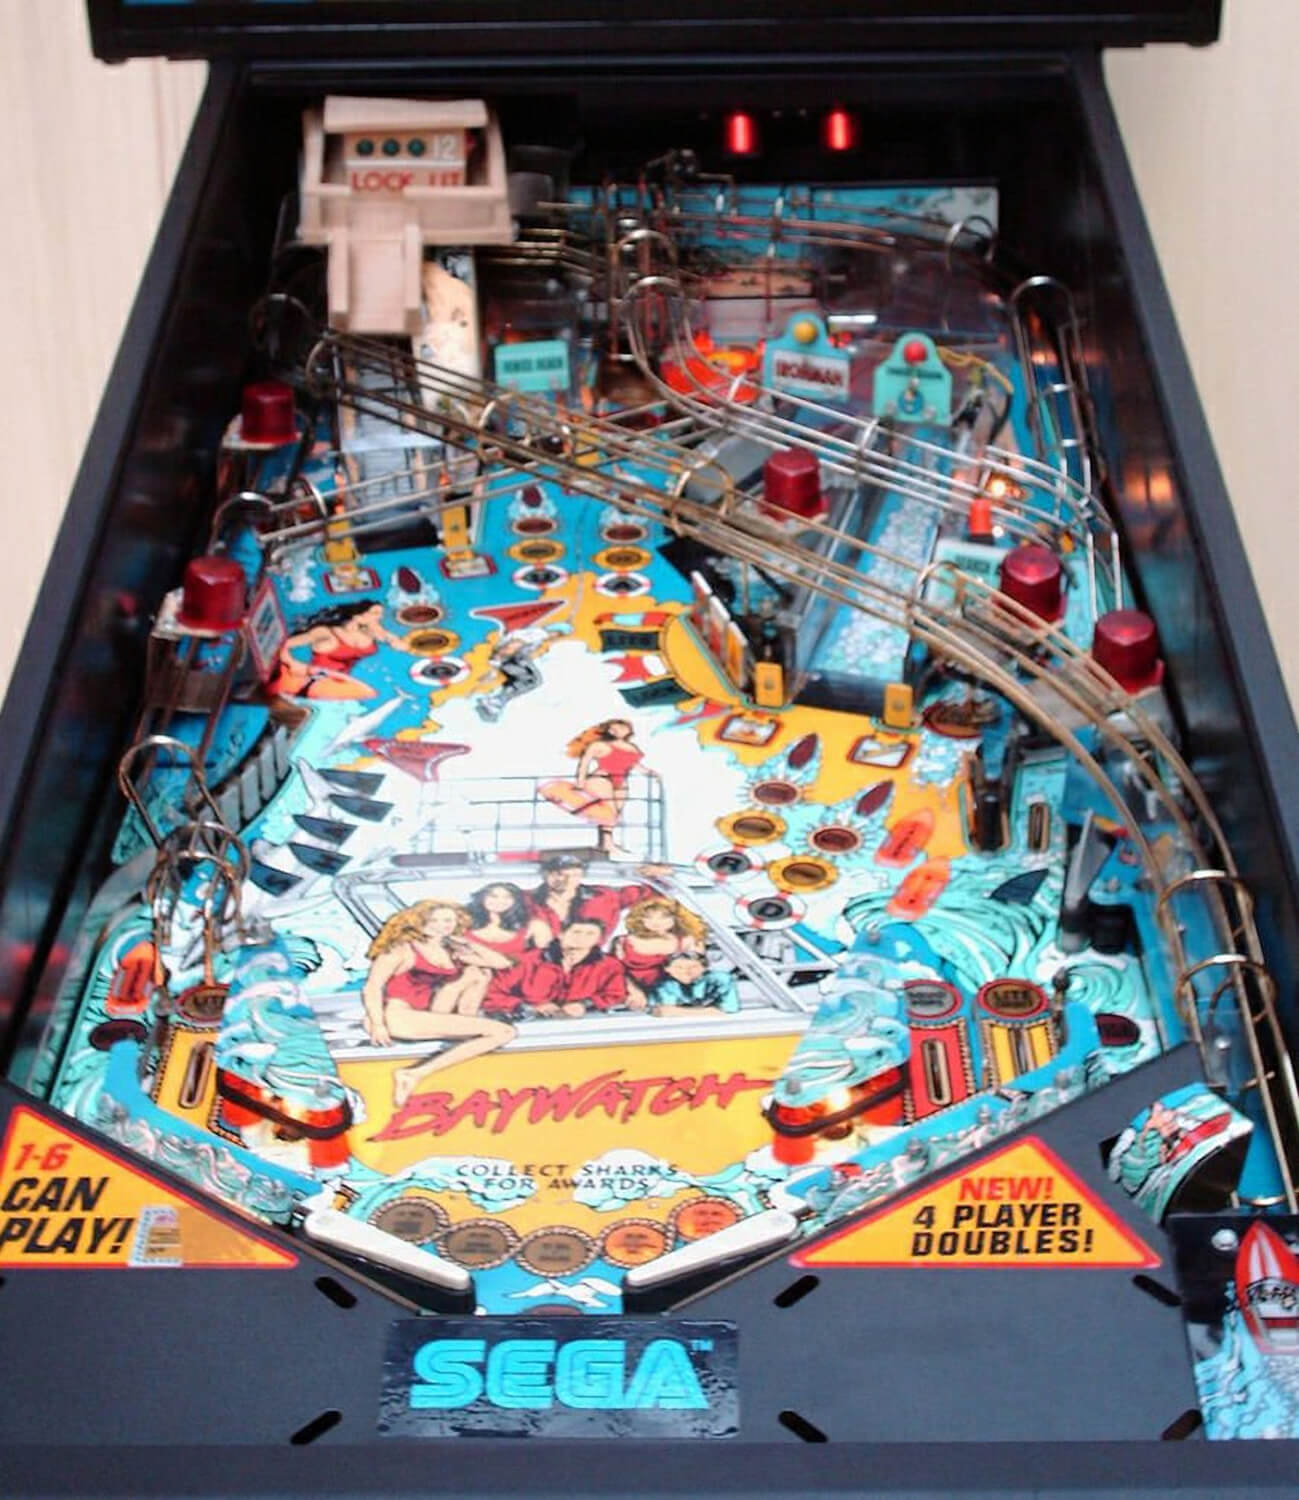 Neon Signs For Sale >> Baywatch Pinball Machine | Liberty Games